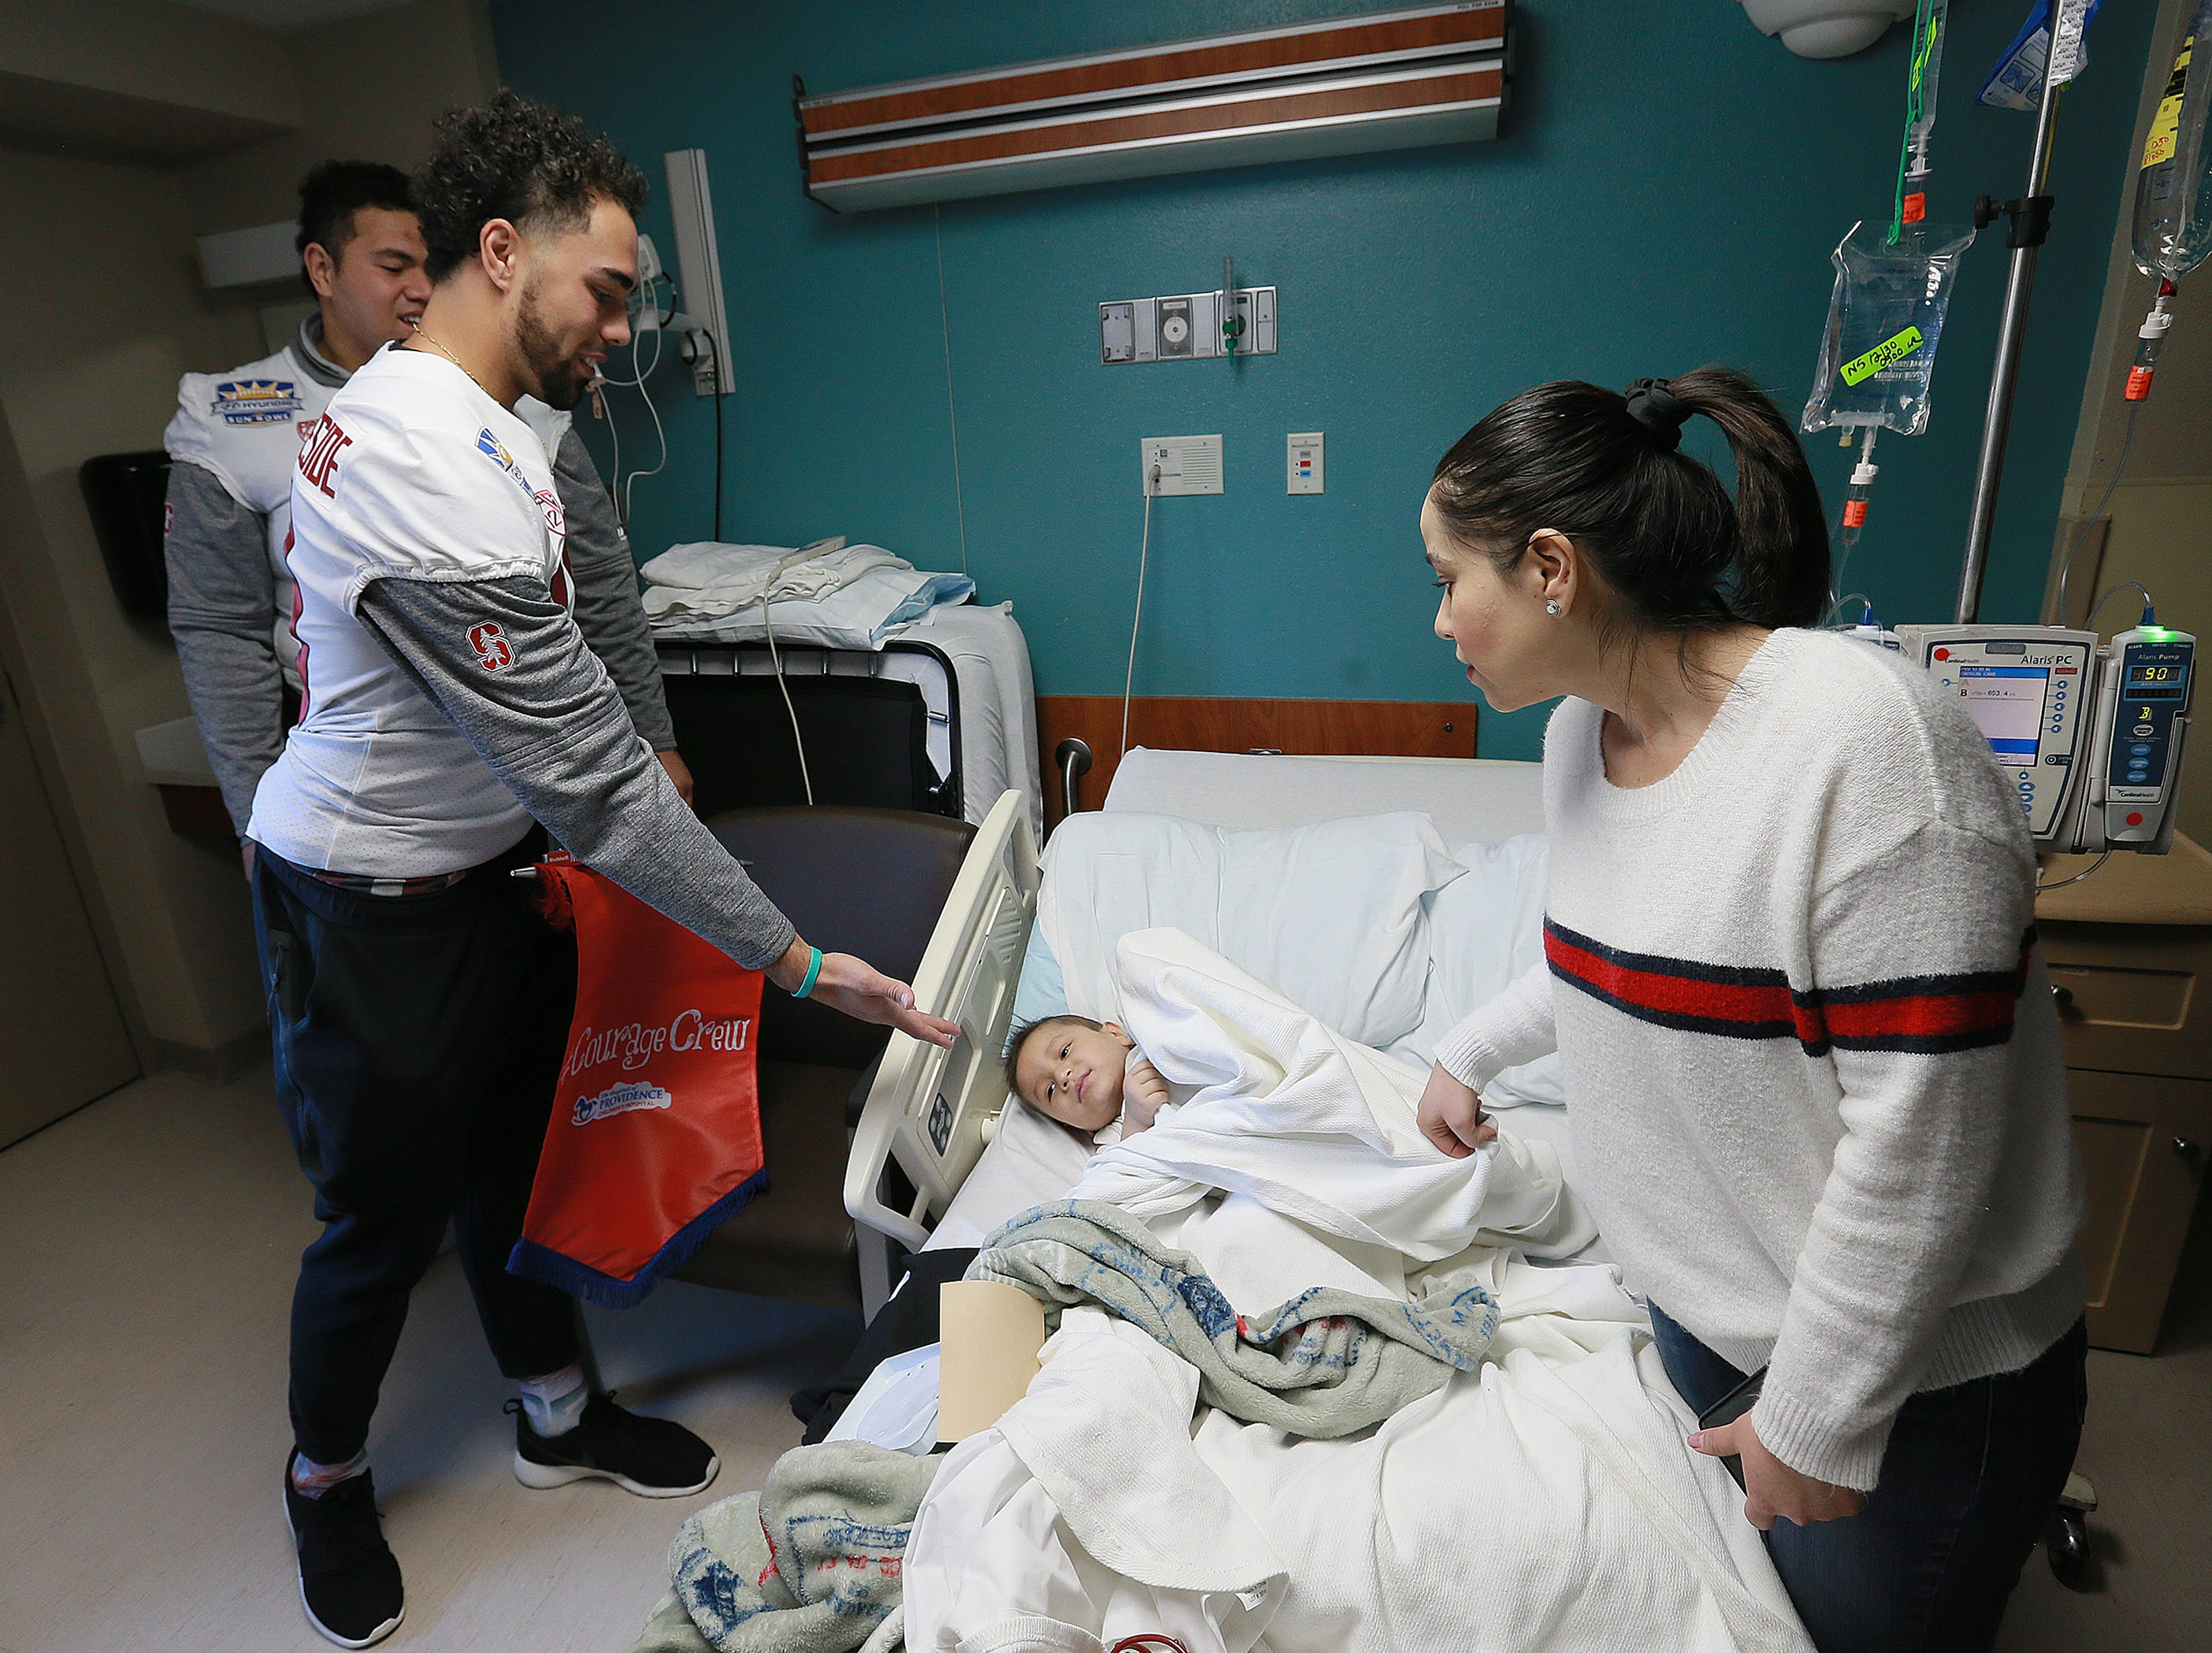 The Stanford football team visited children Sunday at Providence Children's Hospital as Pitt players visited El Paso Children's Hospital. The teams face off Monday in the 85th Hyundai Sun Bowl.